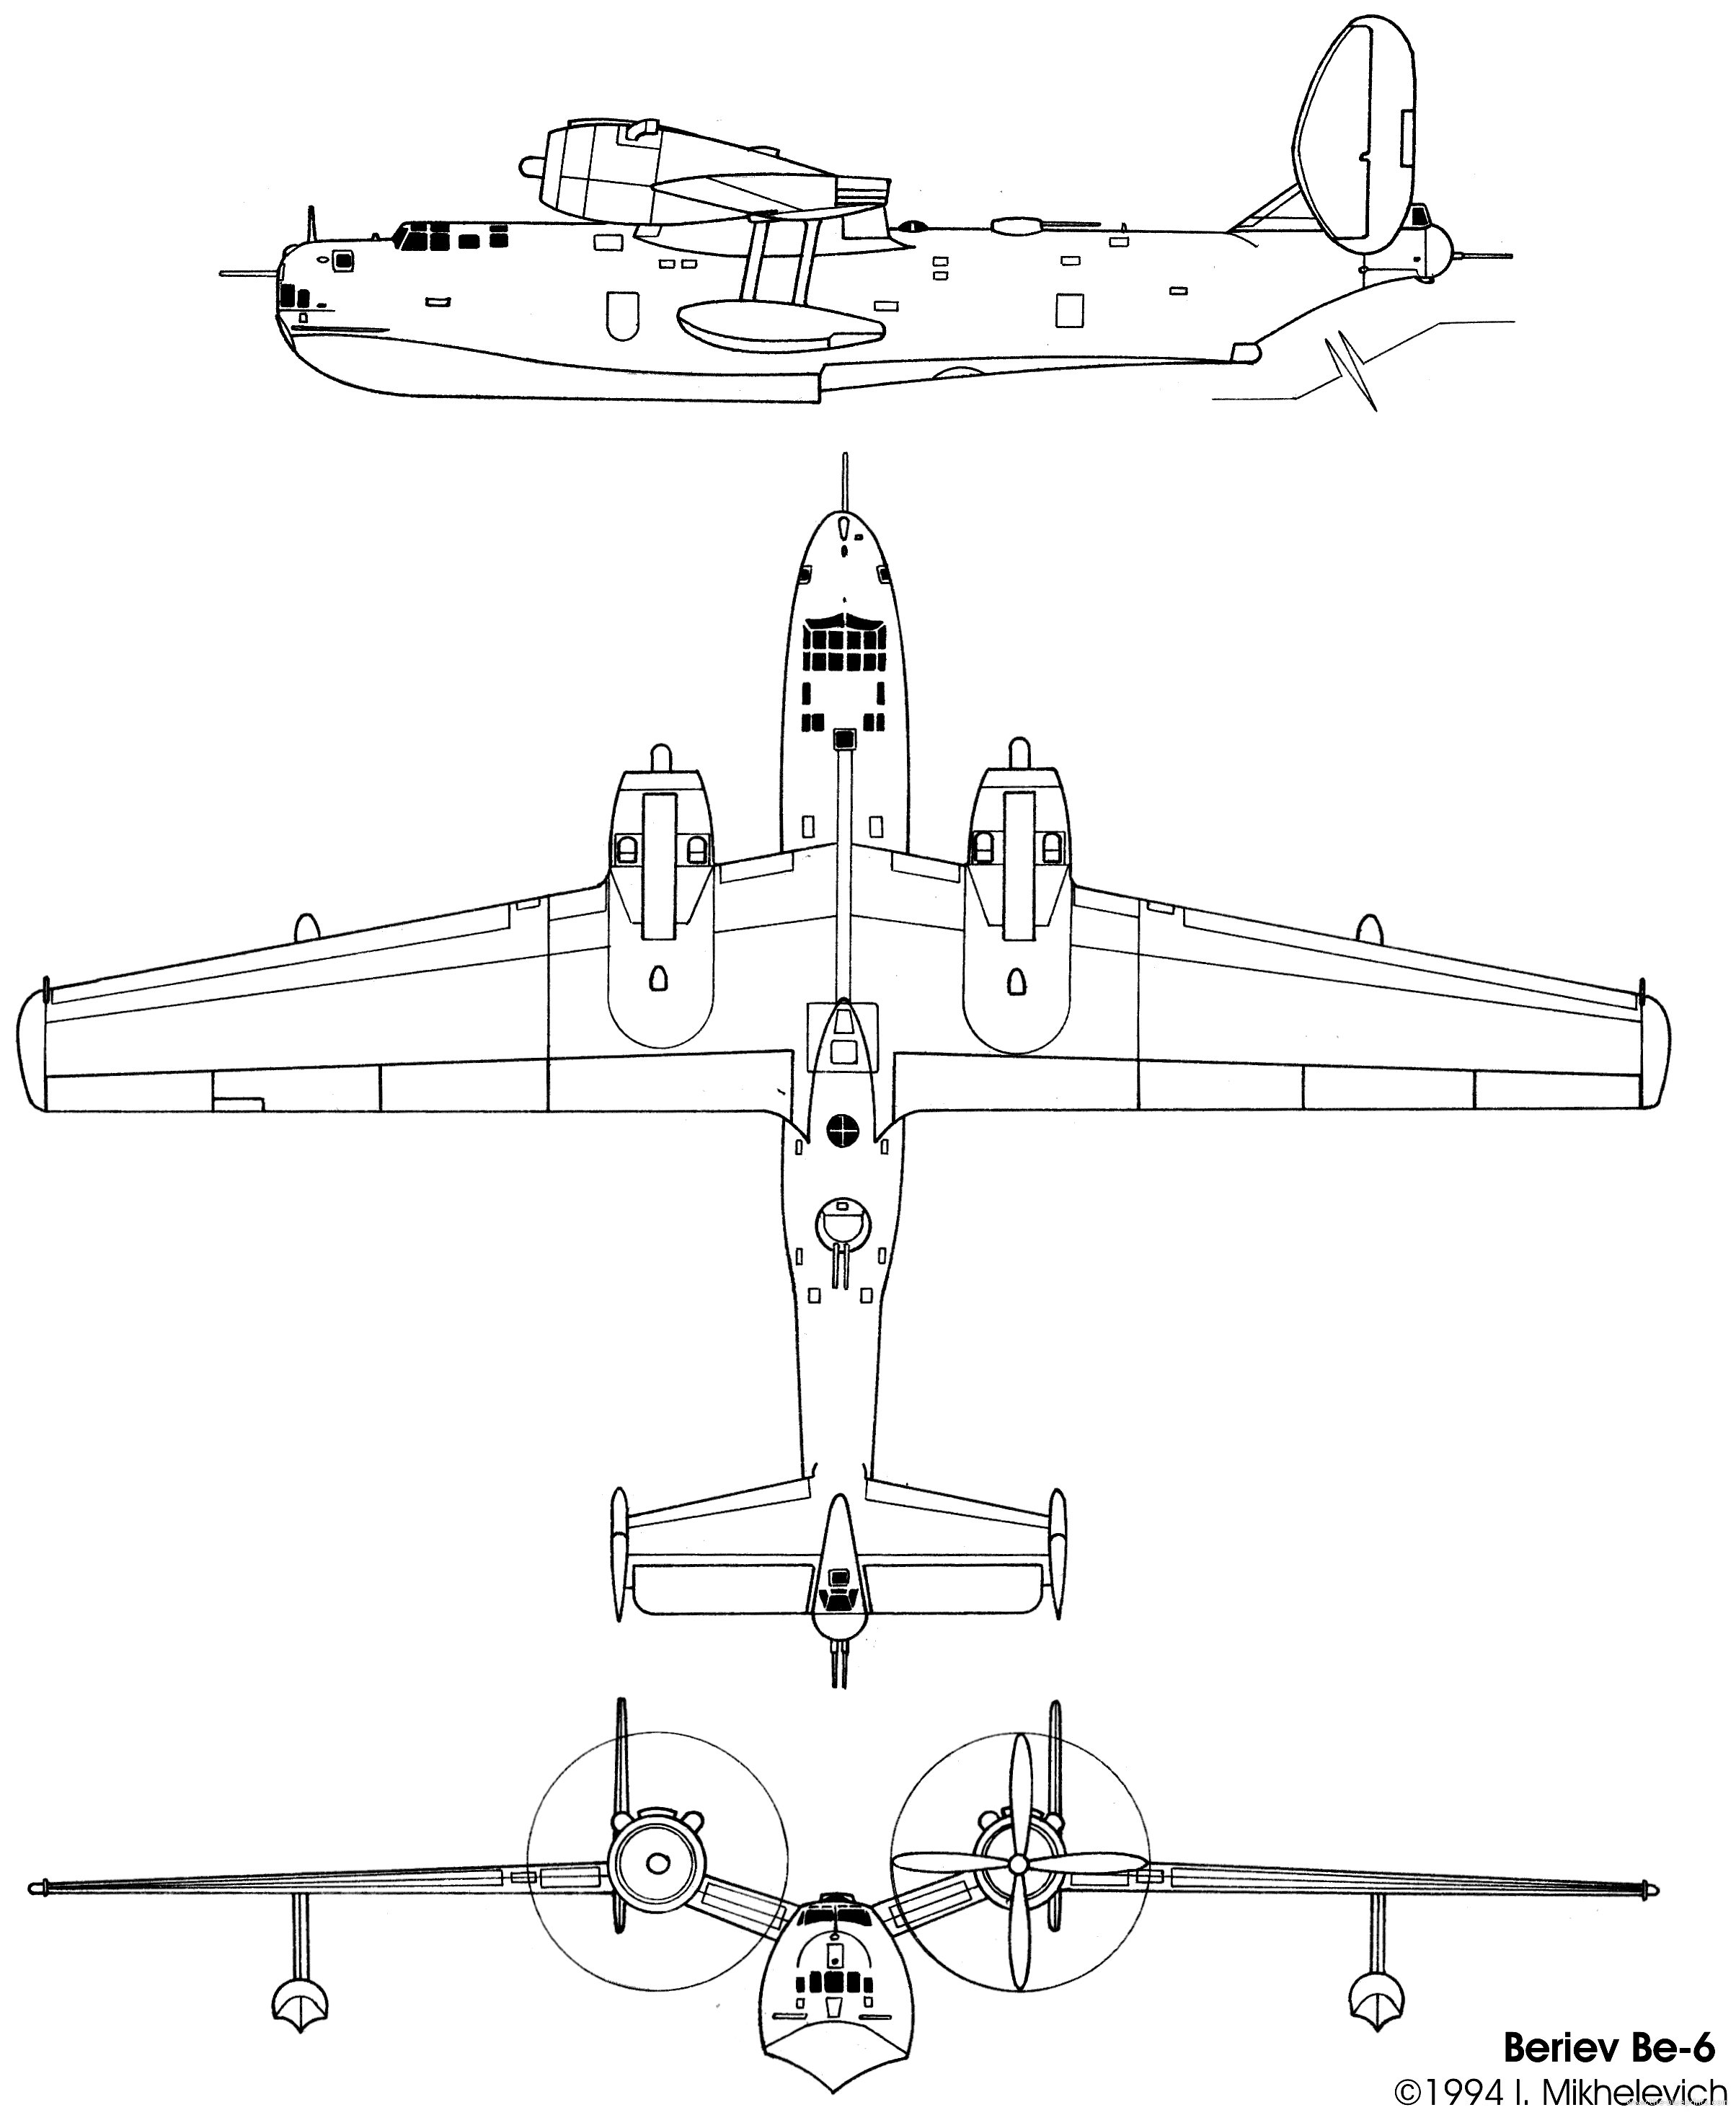 Beriev Be-6 blueprint